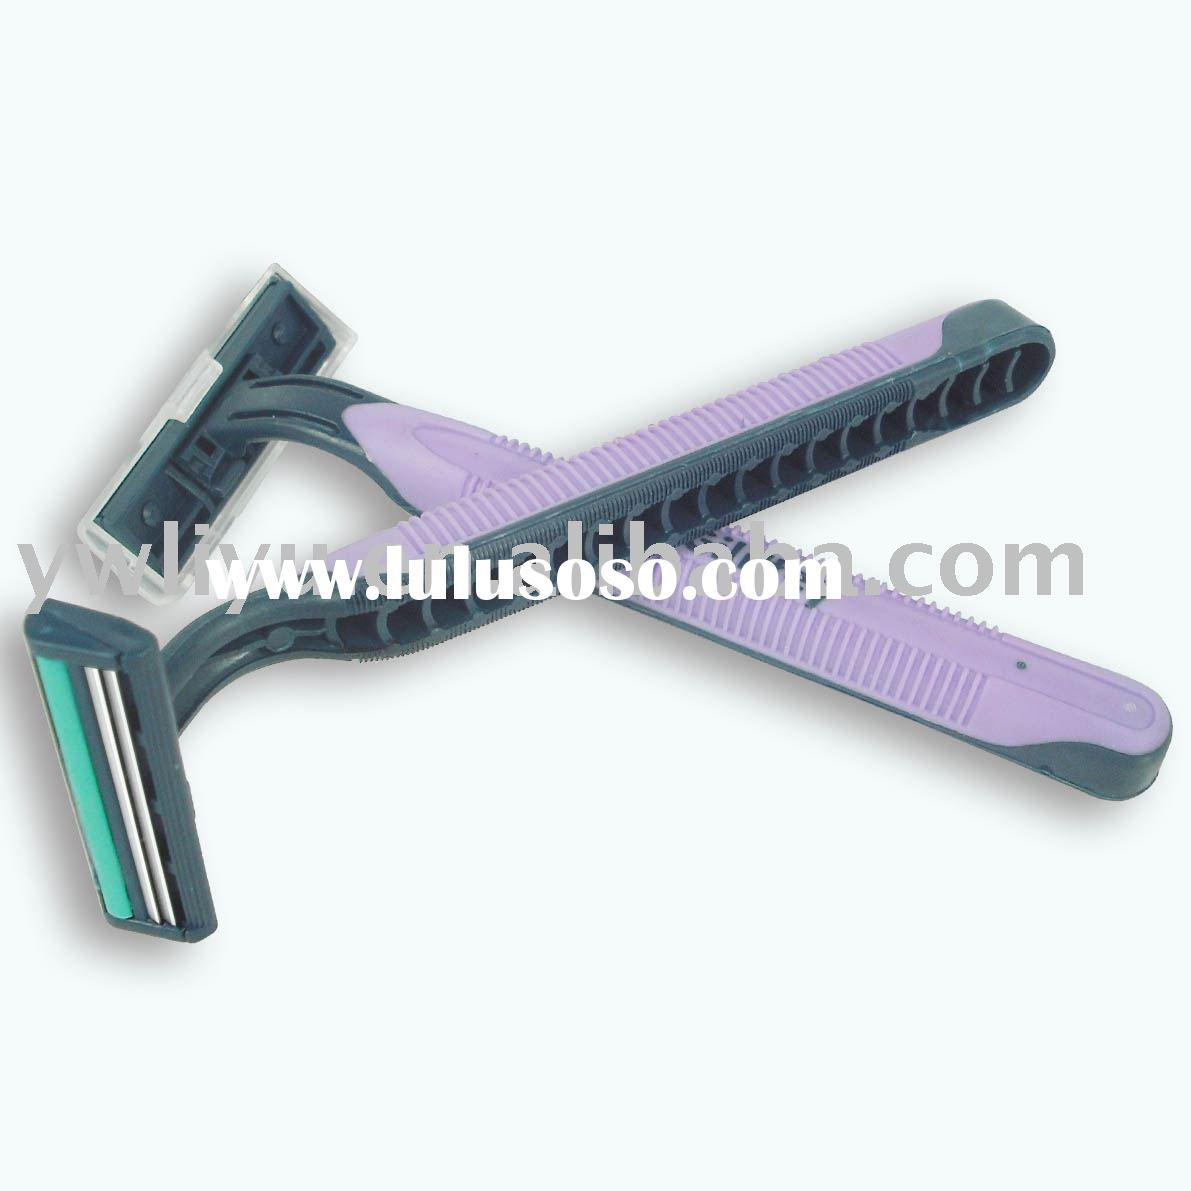 Double edge Blade,razor,Disposable razor